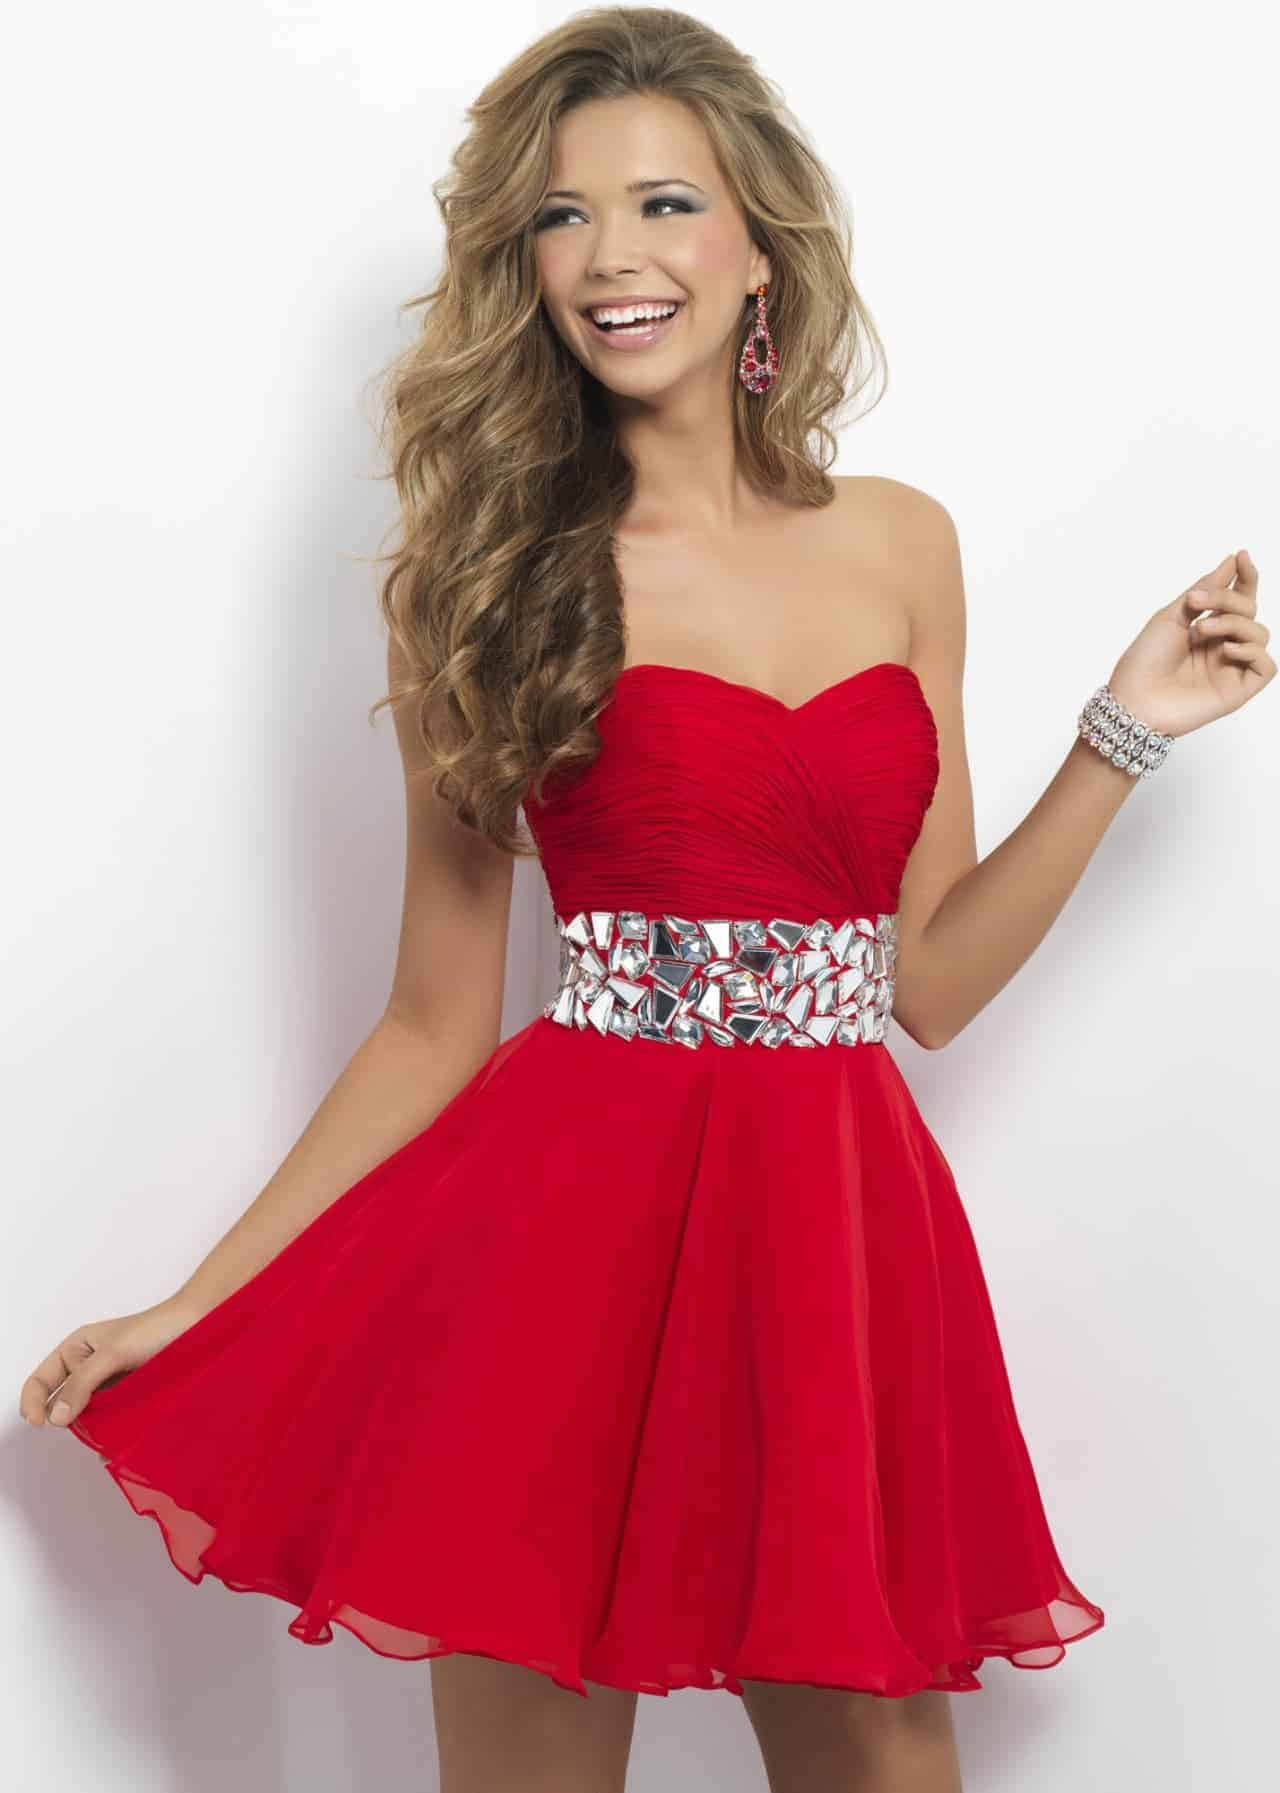 Red night prom dresses for blonde women 2018